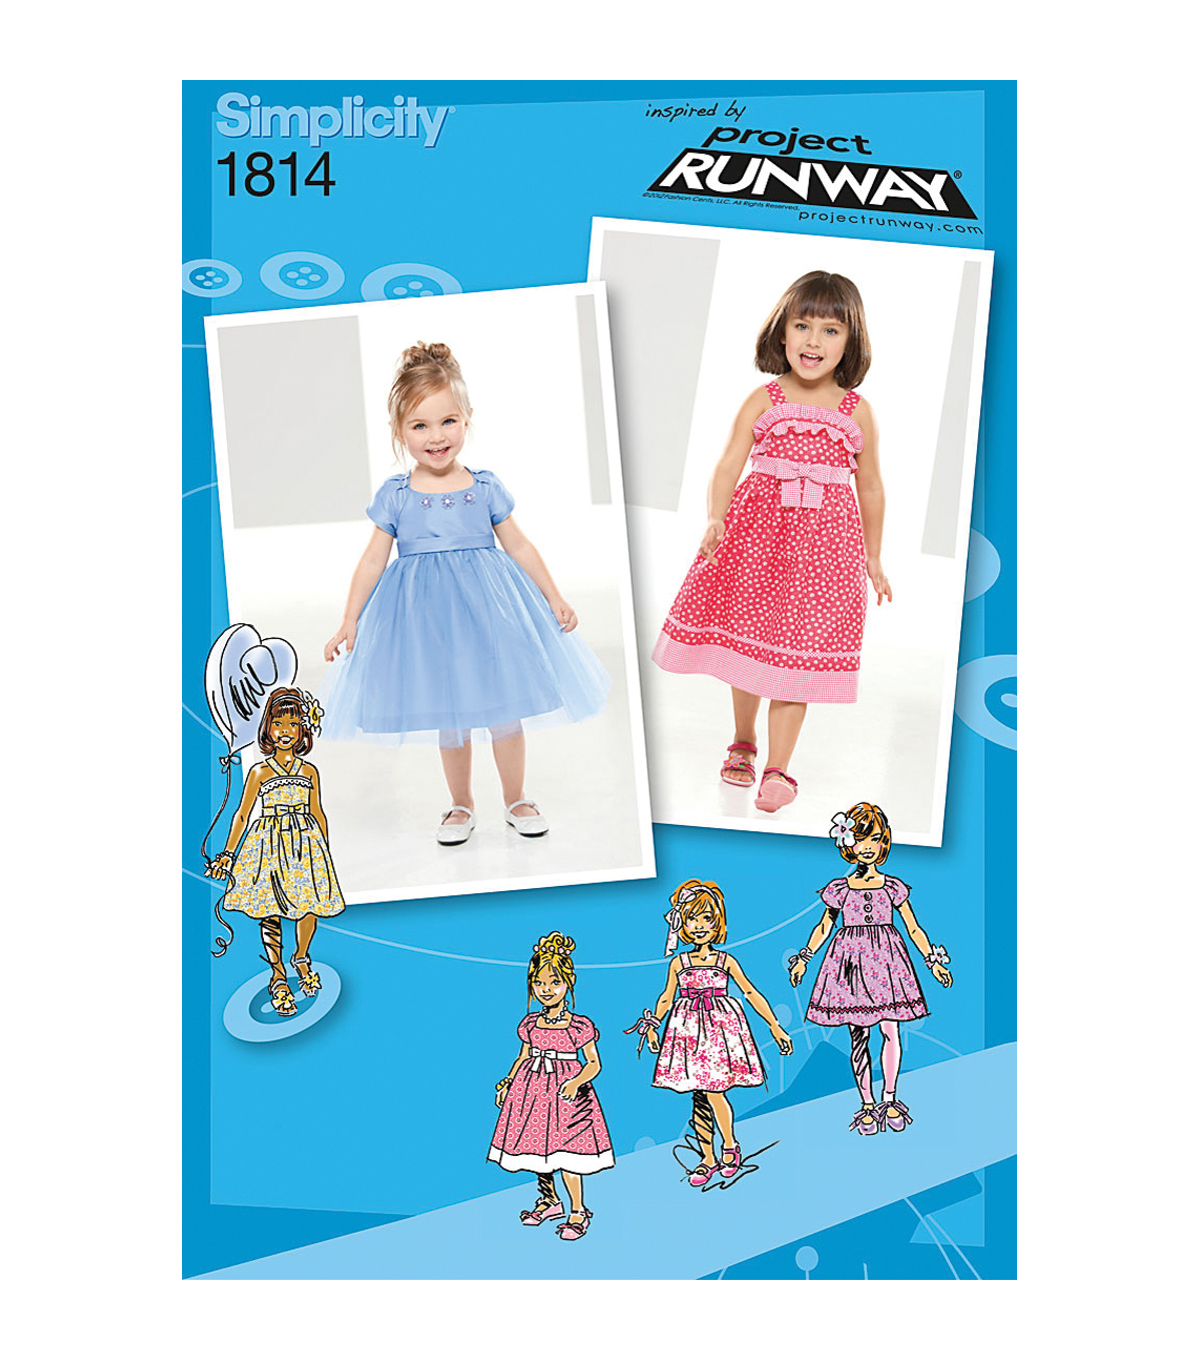 Simplicity Patterns Us1814Bb-Simplicity Toddlers Dresses-4-5-6-7-8